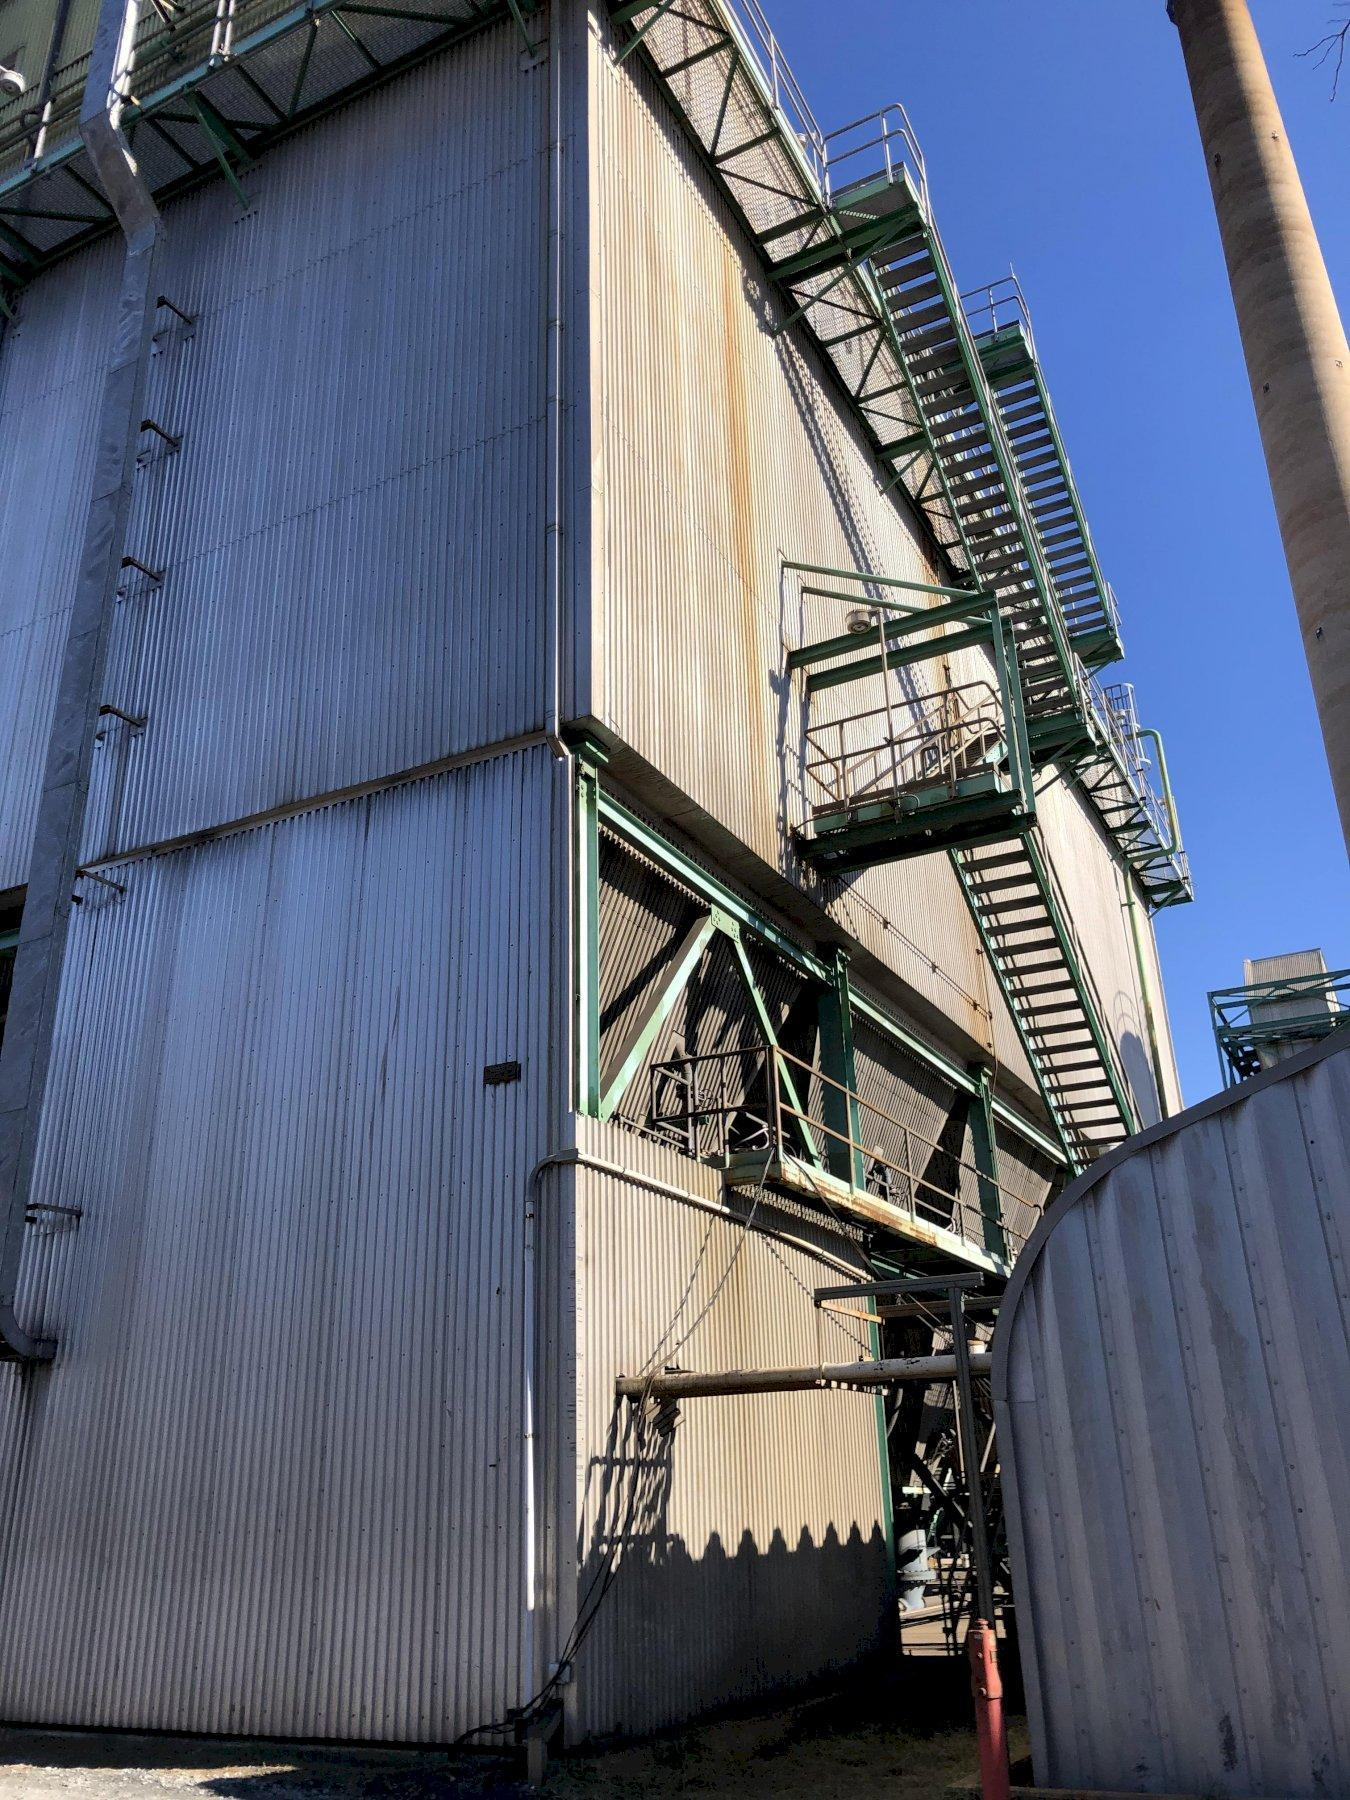 2001 Hamon Research-Cottrell 10 compartment low pressure/high air pulse fabric filter dust collector project # 10639-100, rated at 1,009,200 acfm, 300 degree inlet, each compartment with 824 oblong 21